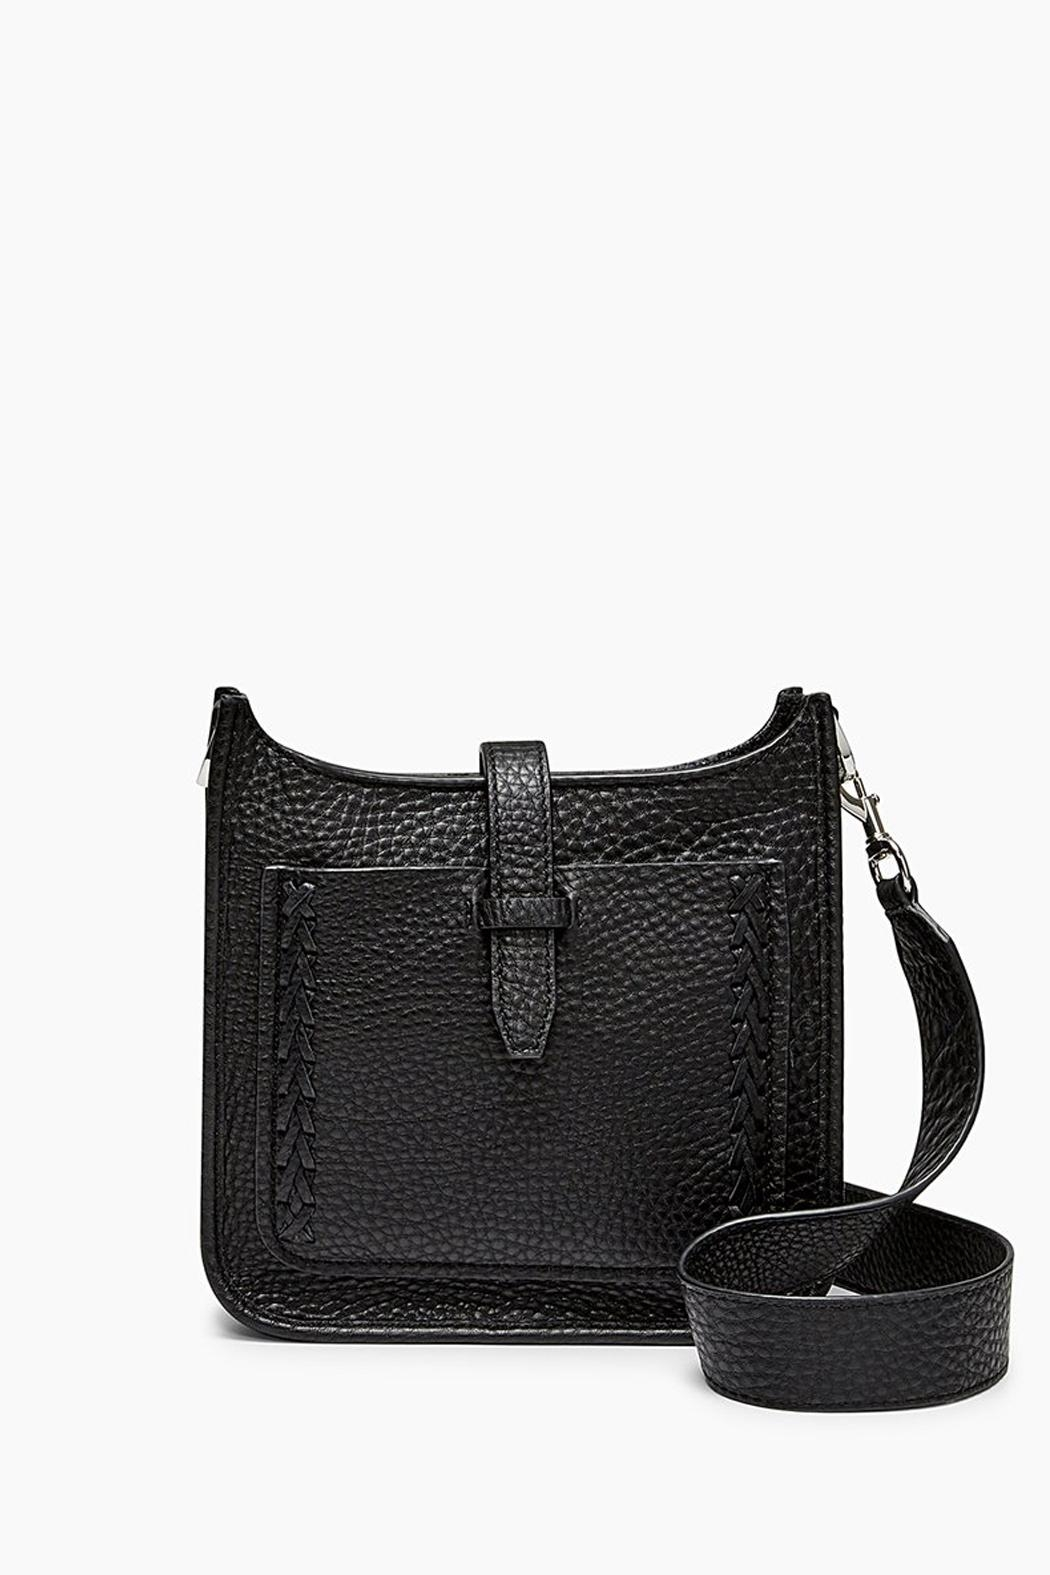 Rebecca Minkoff Black Leather Crossbody - Front Cropped Image